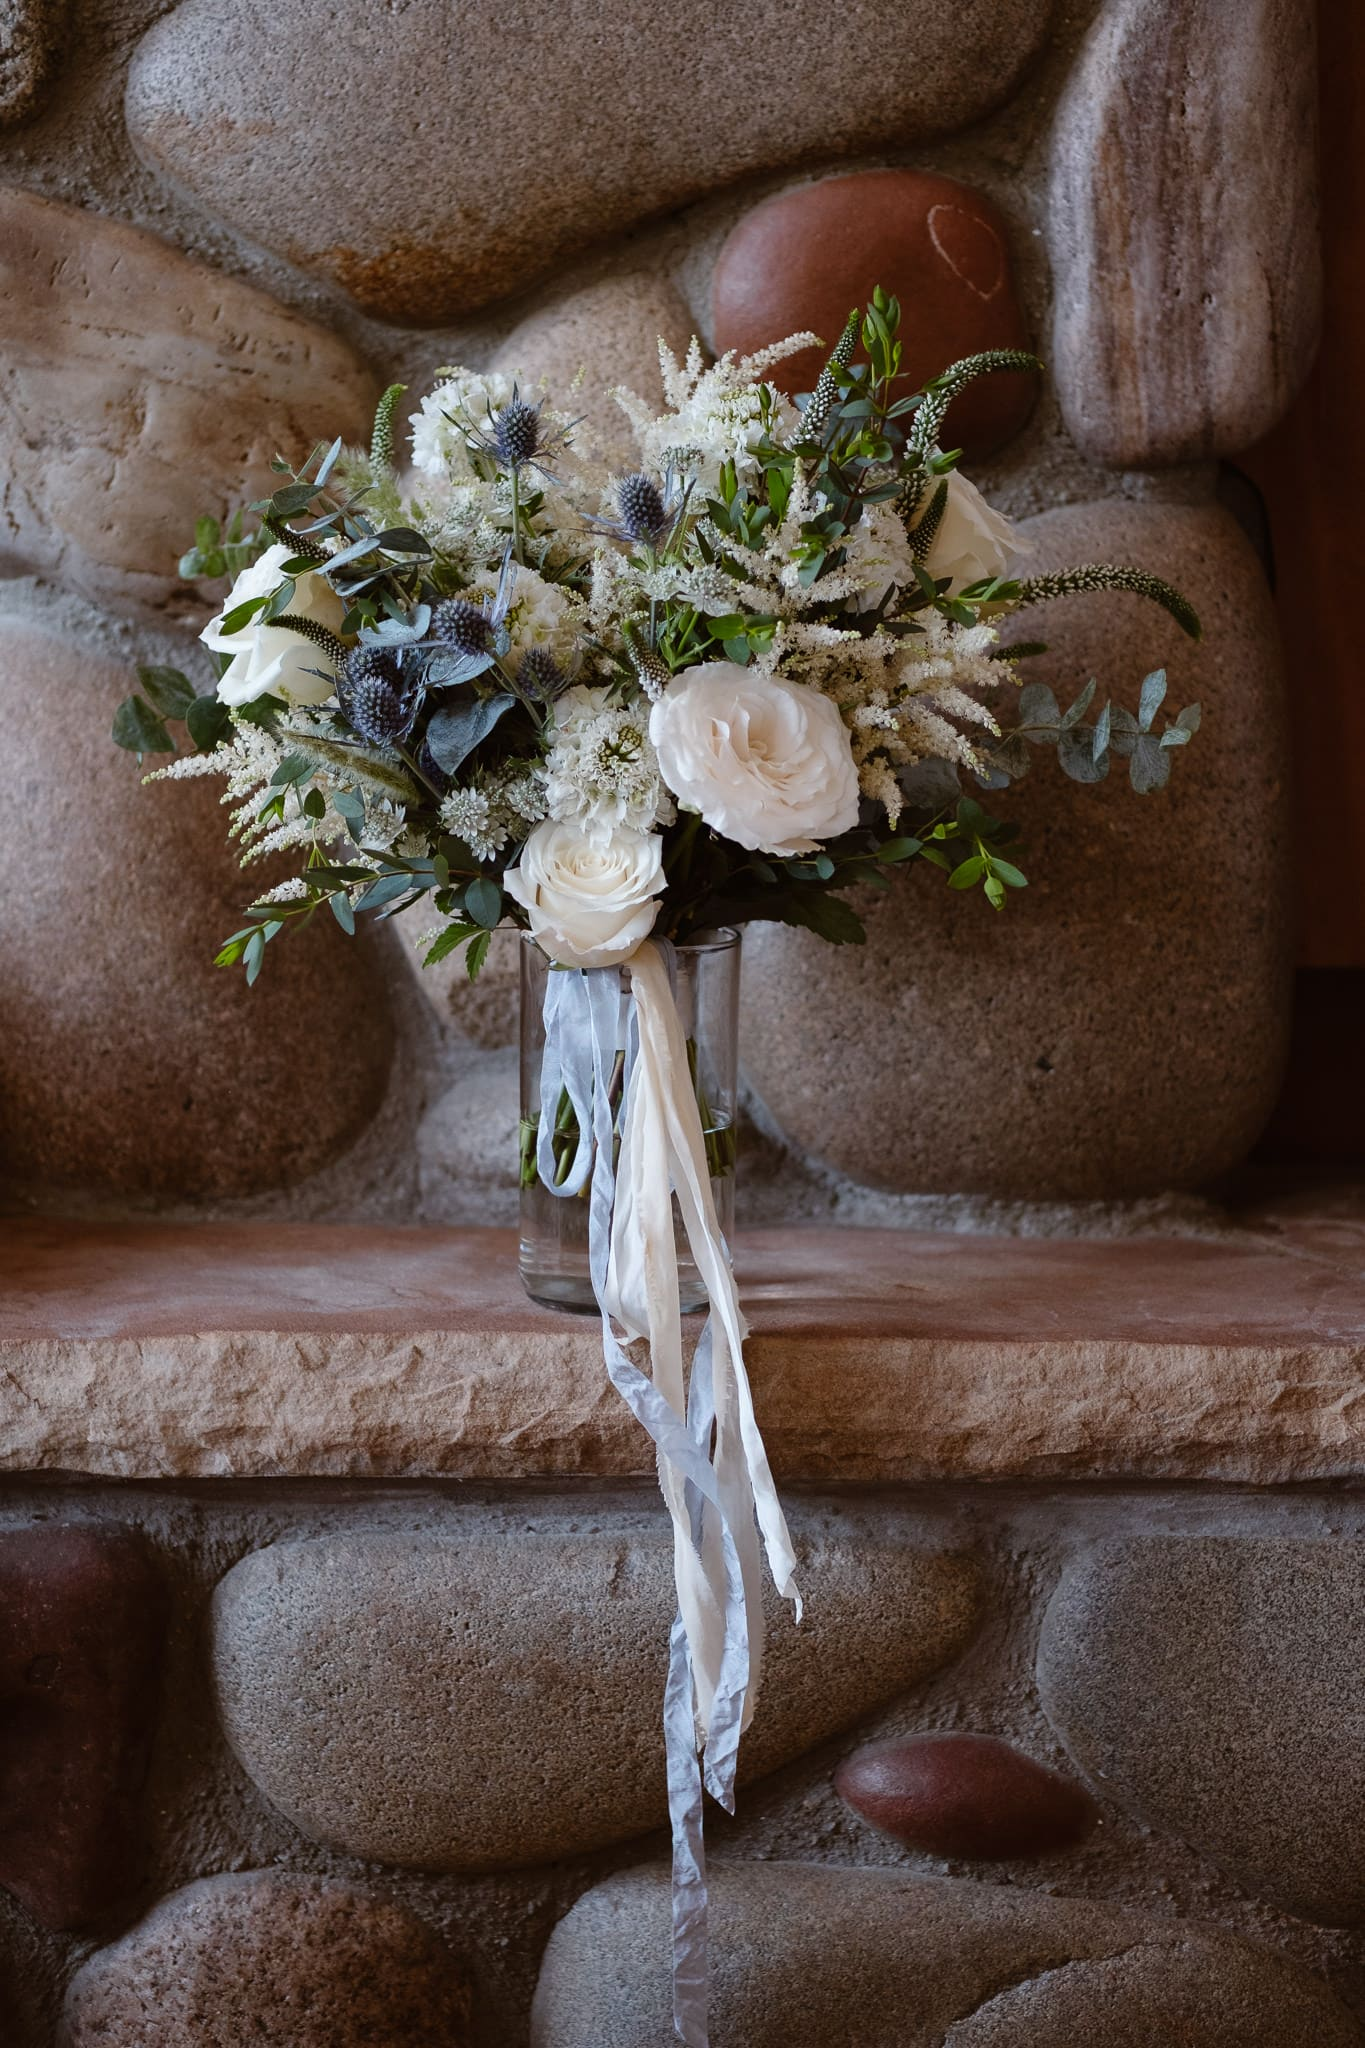 Bride's bouquet with green, cream, and pale blue flowers and hand dyed silk ribbons by Flora by Nora for Breckenridge Nordic Center wedding